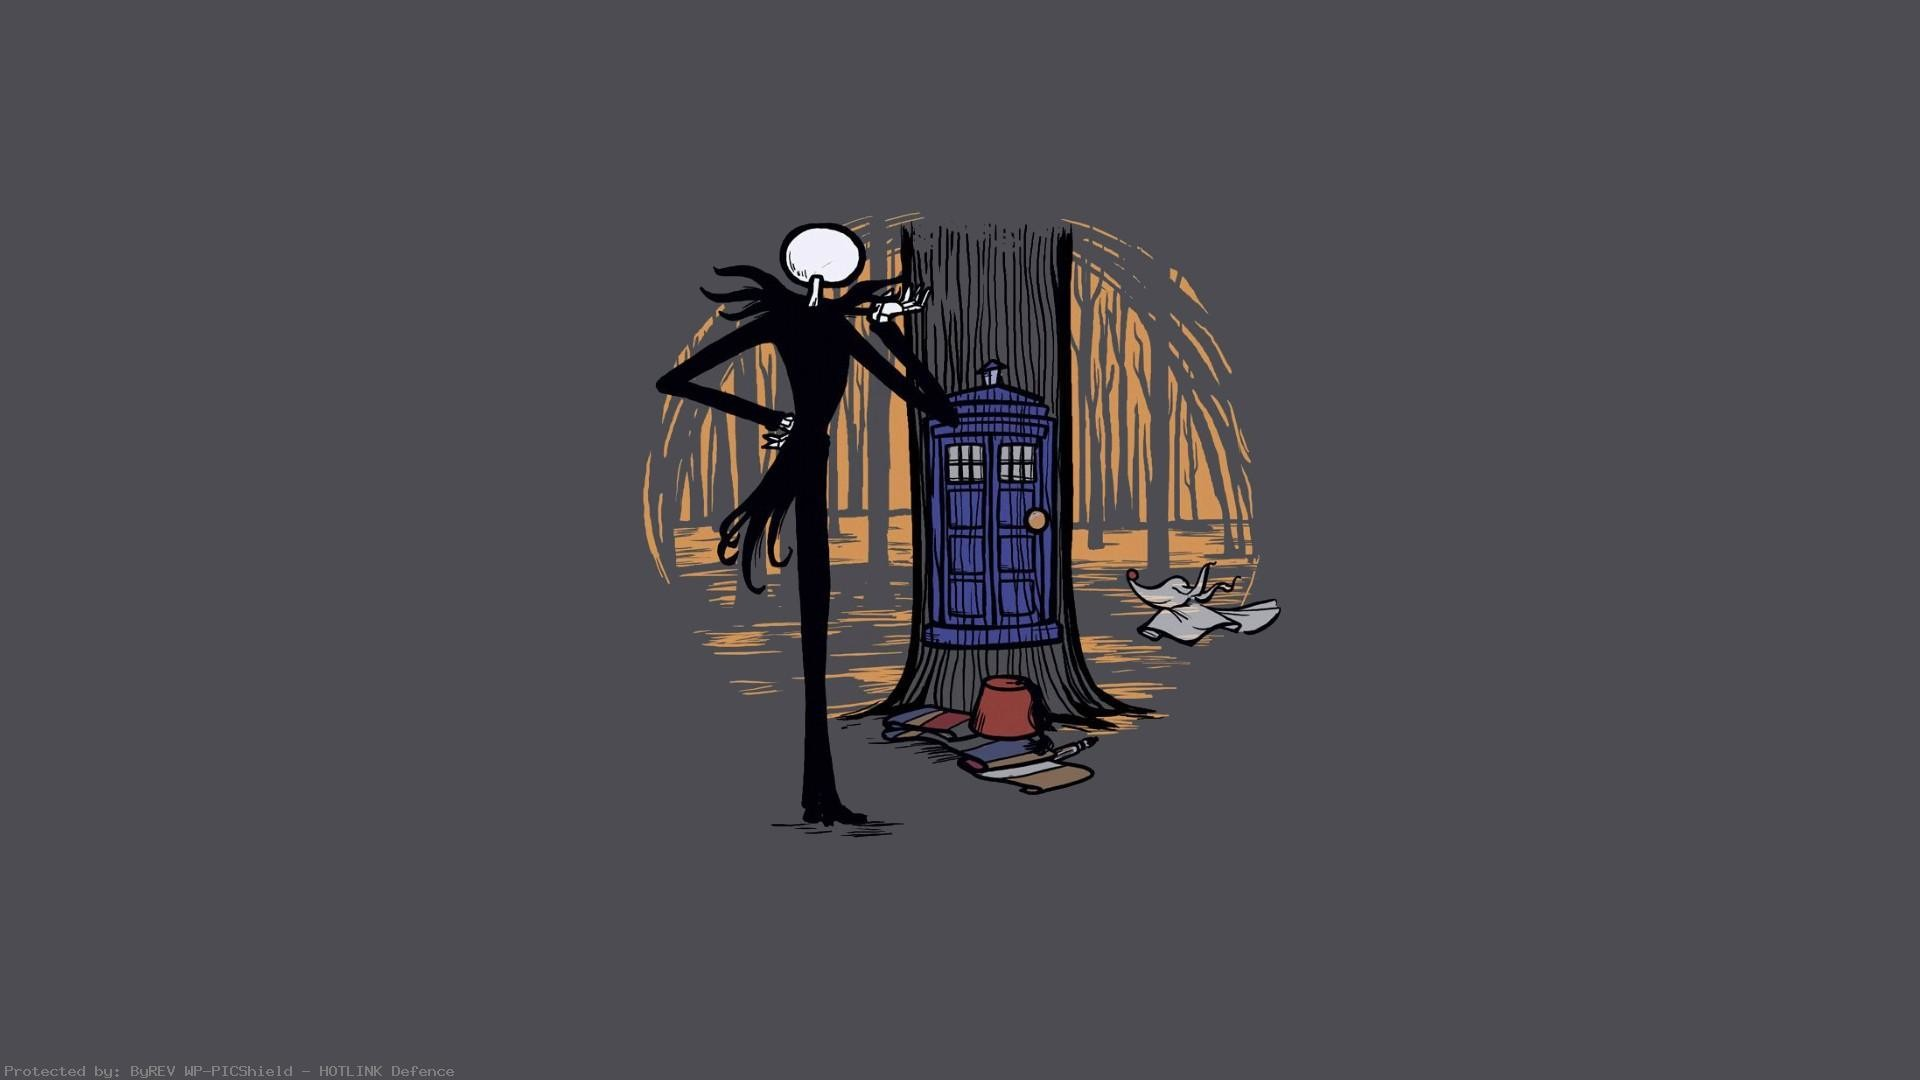 Crossover-The-Nightmare-Before-Christmas-and-images-wallpaper-